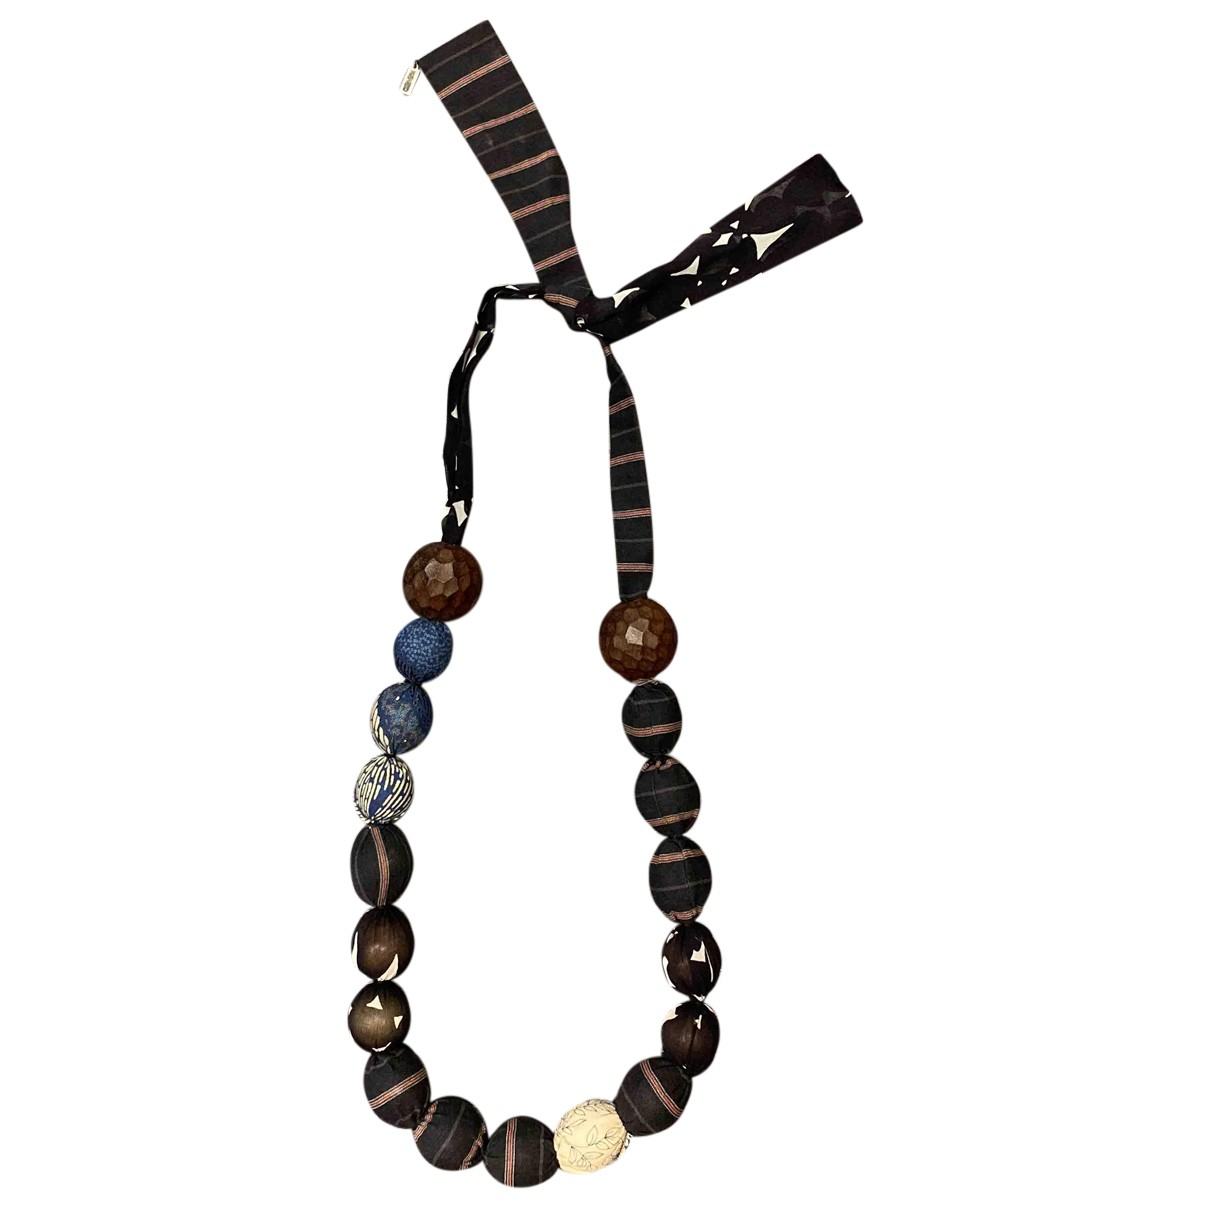 Kenzo N Multicolour Cloth necklace for Women N